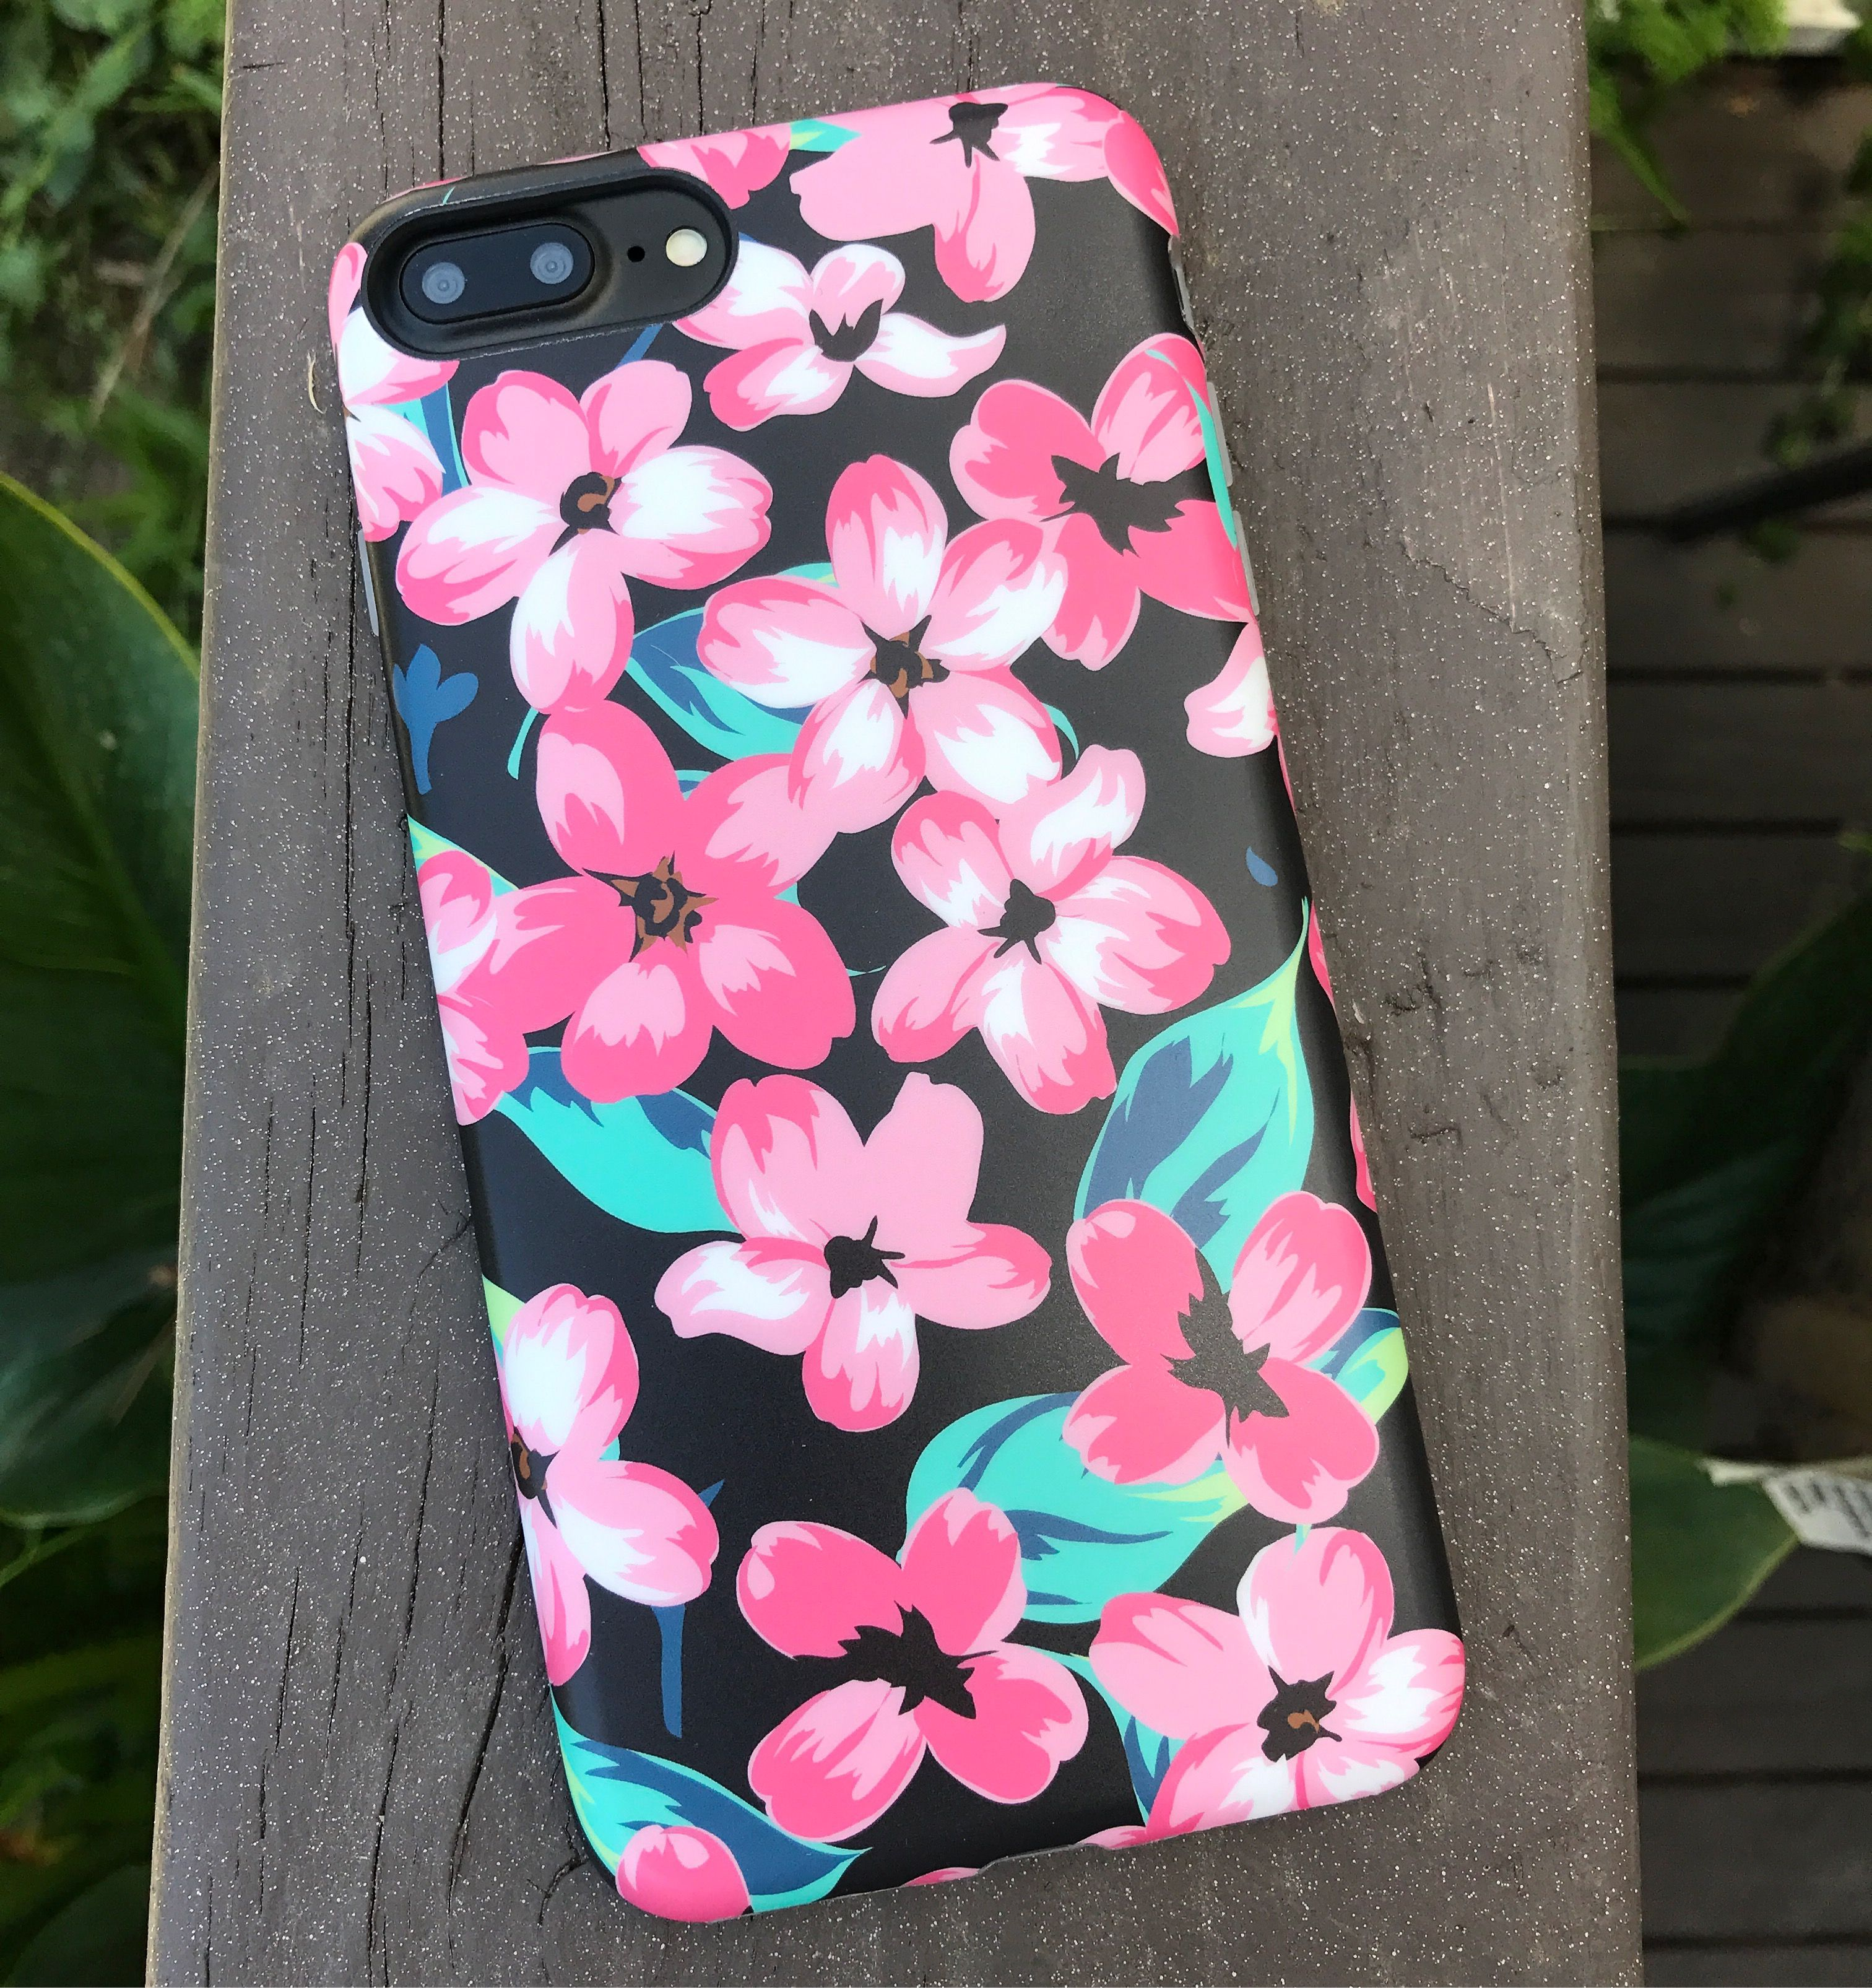 Nightlily  Feeling Floral with the Nightlily Case from Elemental Cases available for iPhone 7 & iPhone 7 Plus